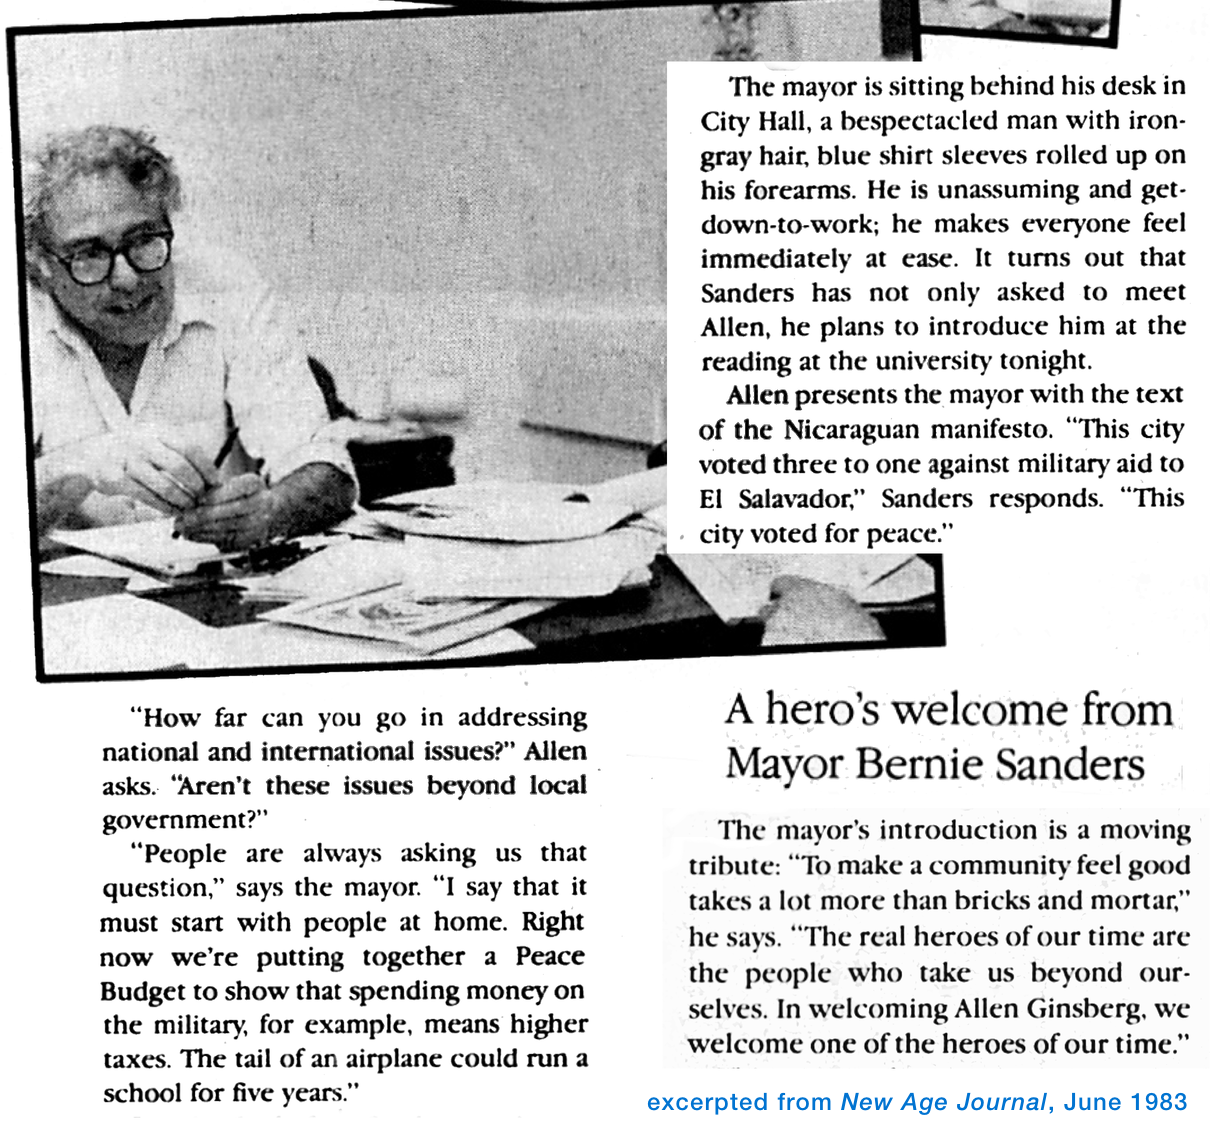 Bernie Sanders at his desk and excerpts from 1983